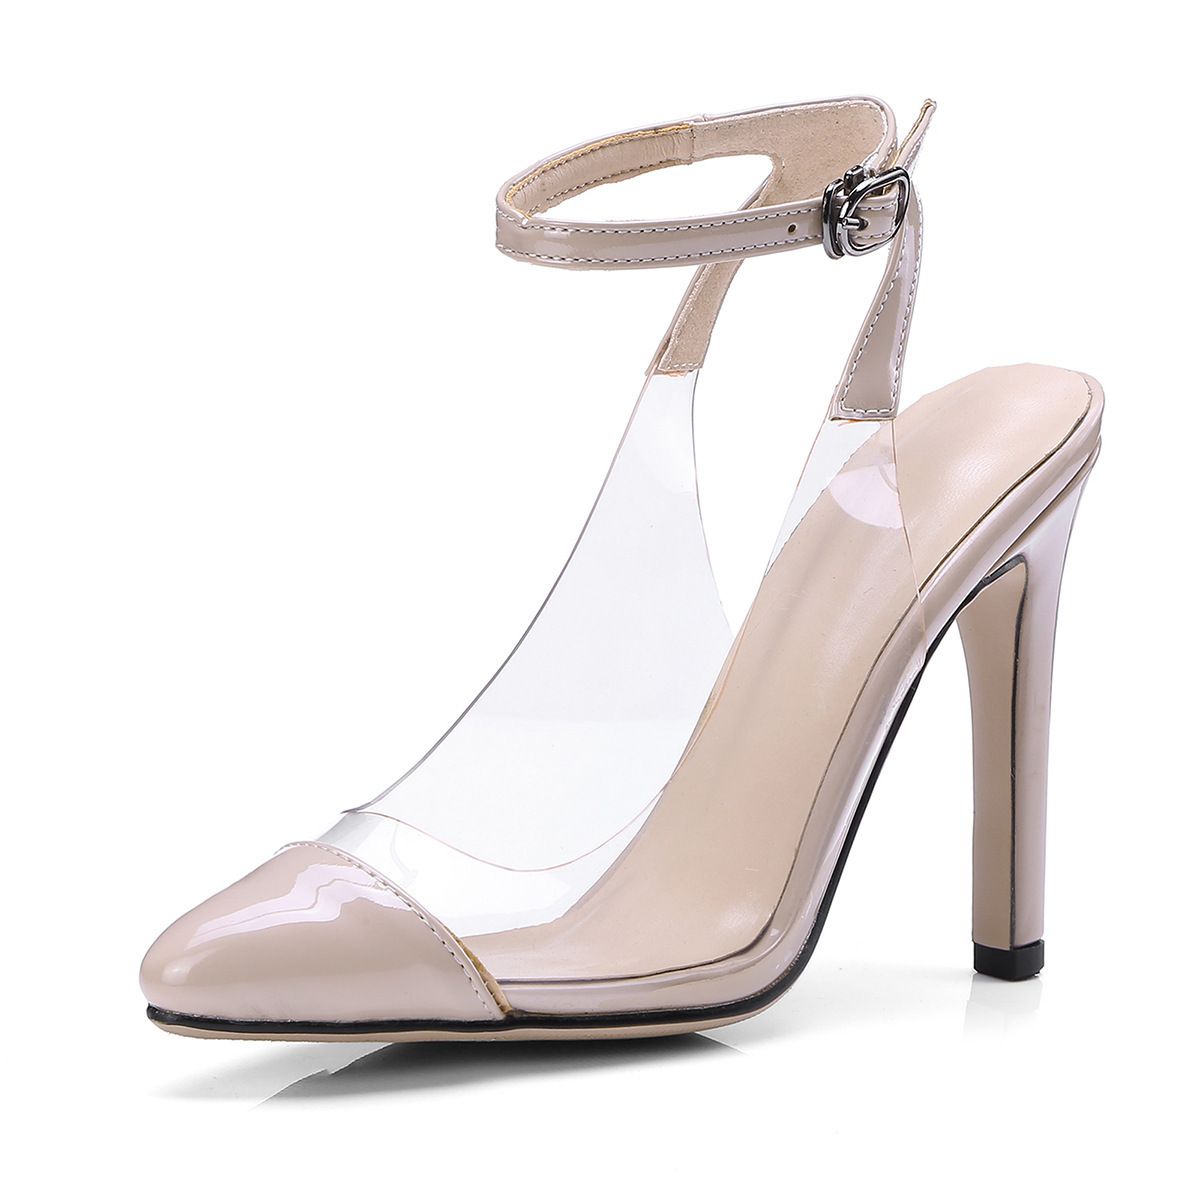 Hot2019 Glue Glass Transparent Sandals High With Baotou Women's Shoes Will 1278-3